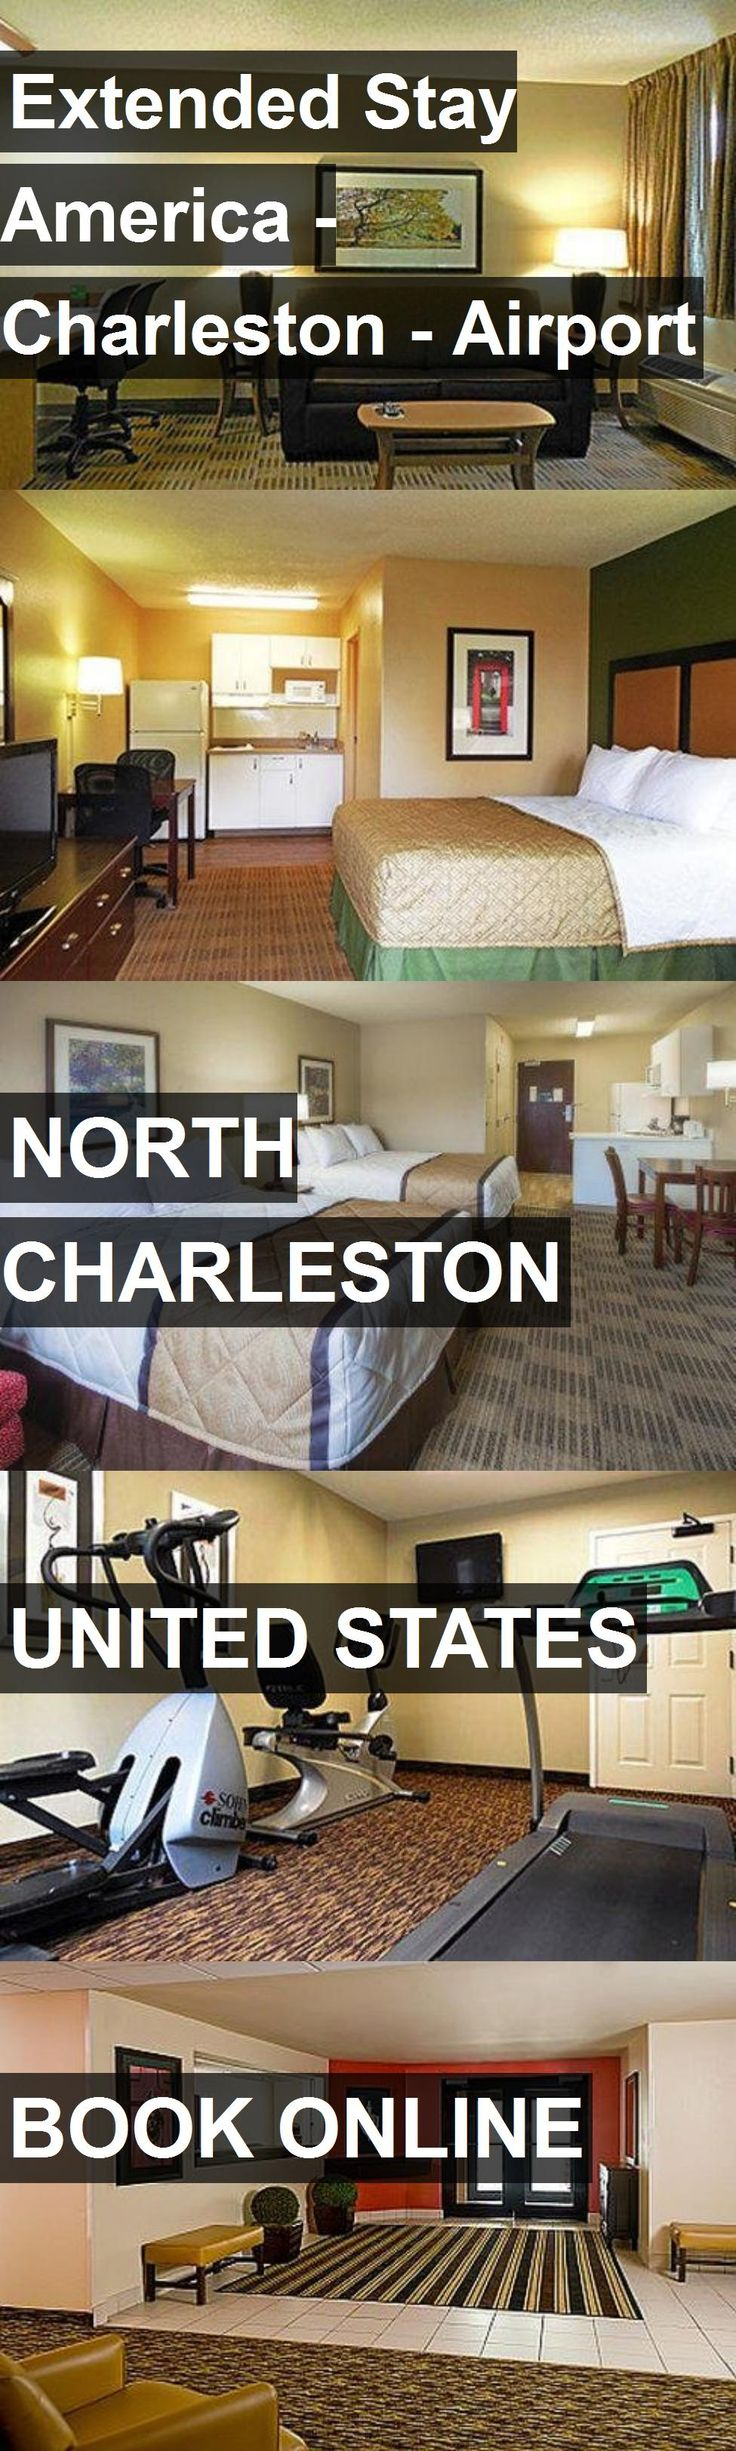 Hotel Extended Stay America - Charleston - Airport in North Charleston, United States. For more information, photos, reviews and best prices please follow the link. #UnitedStates #NorthCharleston #ExtendedStayAmerica-Charleston-Airport #hotel #travel #vacation